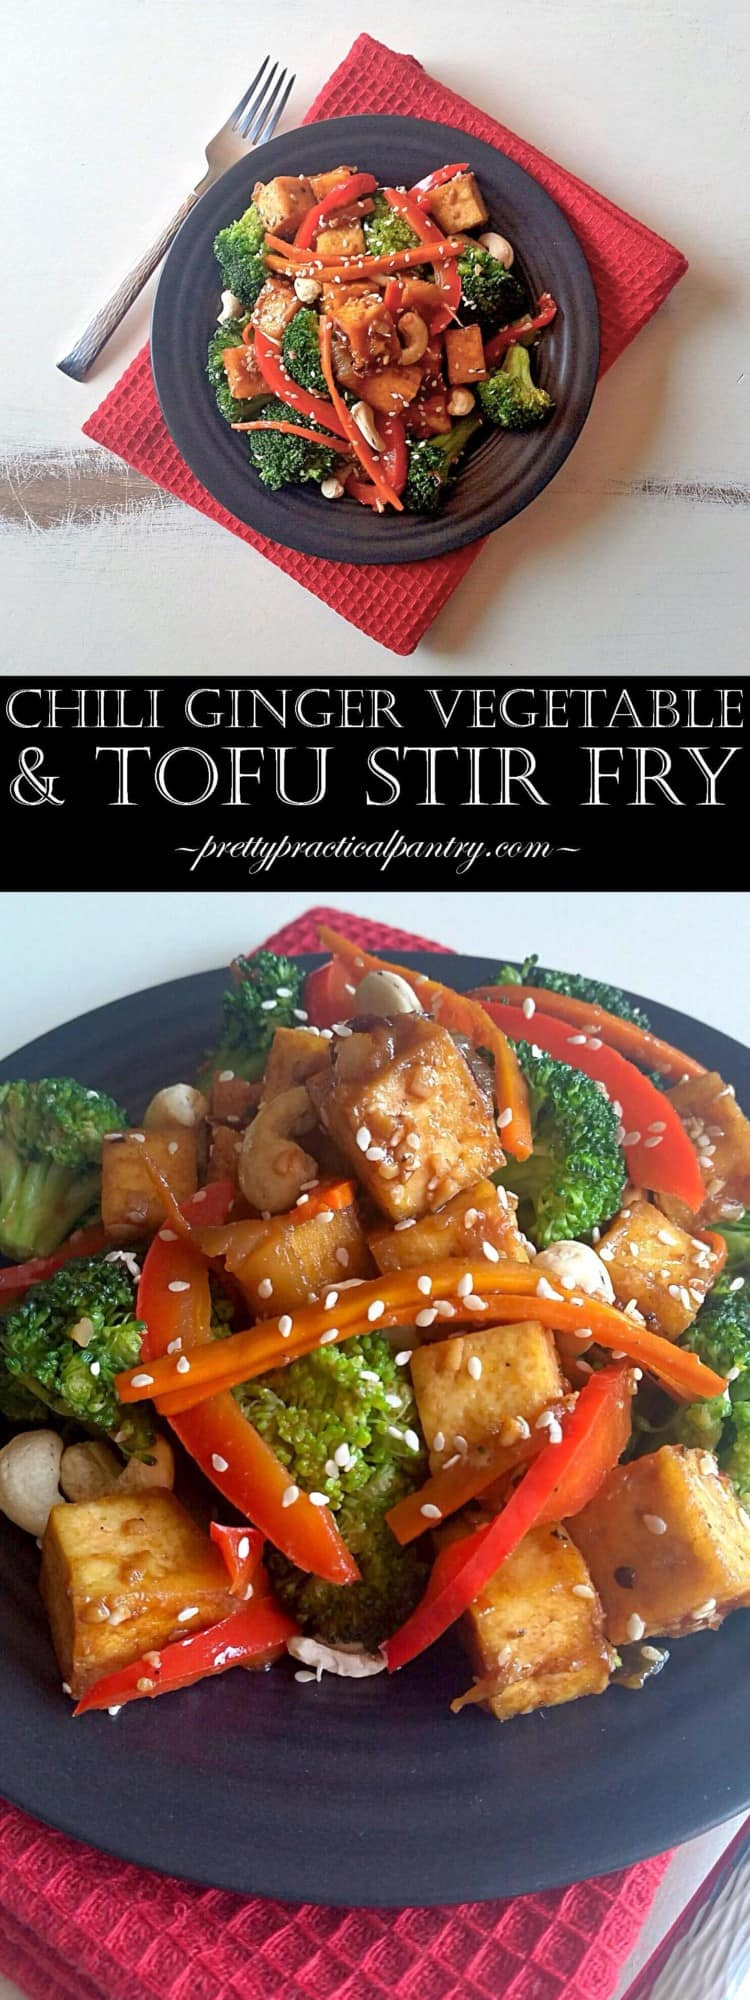 Chilli Ginger Vegetable & Tofu Stir Fry - Lord Byron's Kitchen